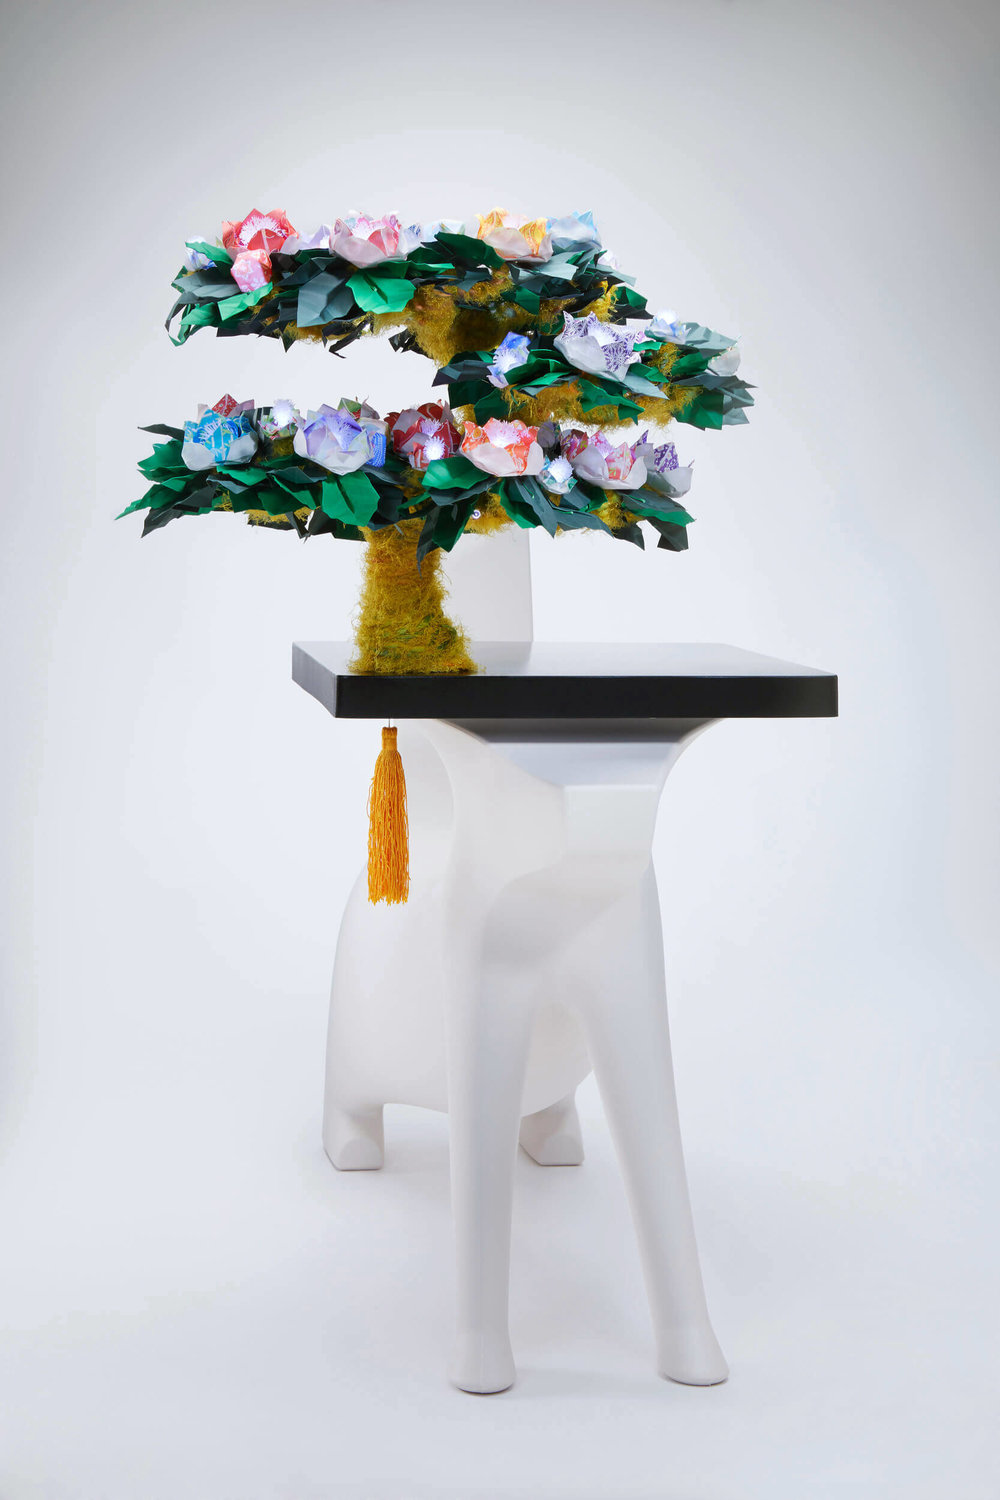 Magis-Magical tree-of-imagination-origami-LED-lamp-kid-furniture.jpg